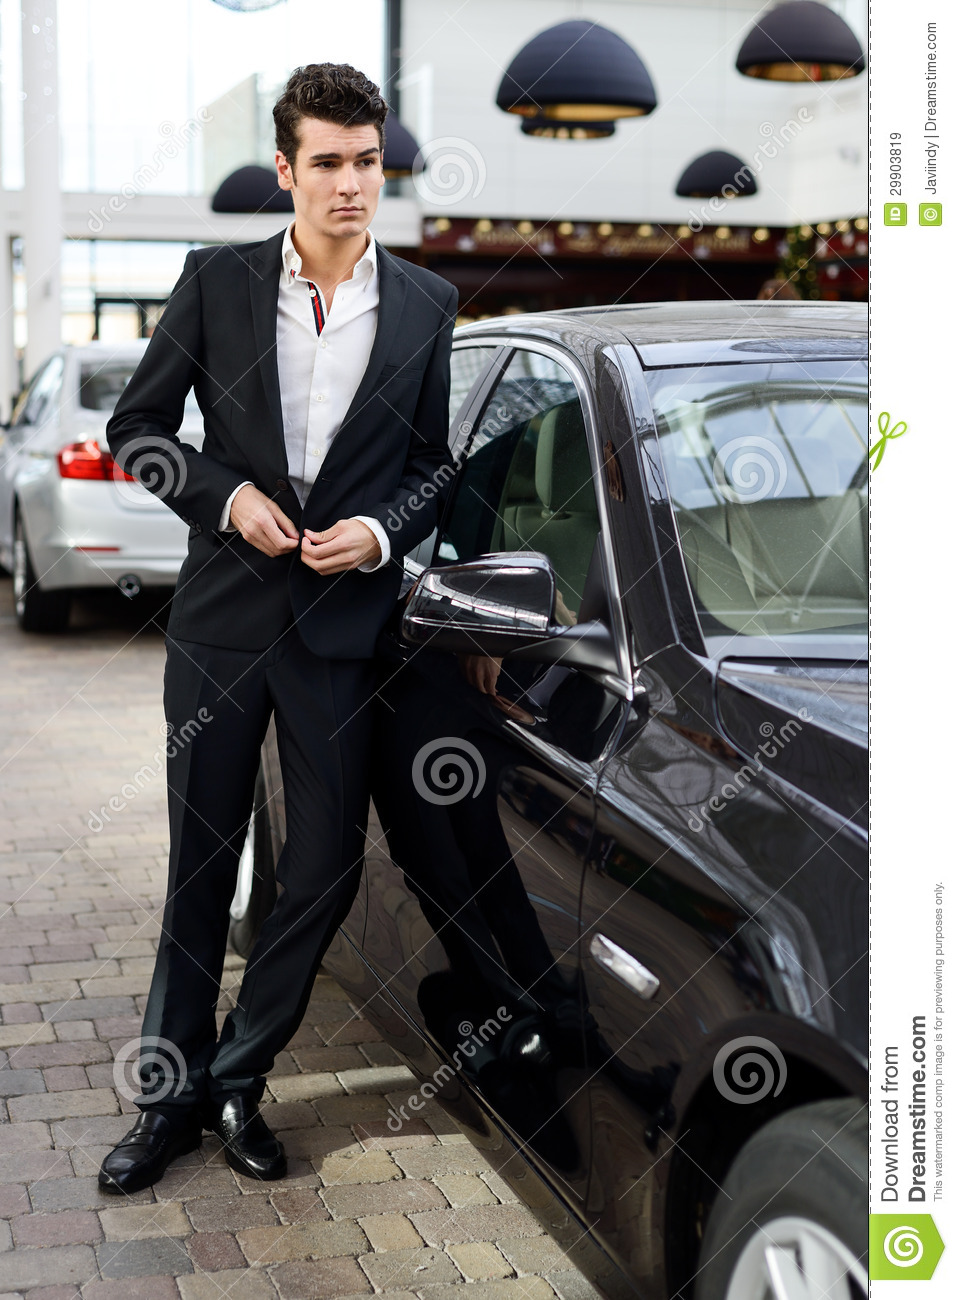 Young Handsome Man Model Of Fashion With Luxury Cars